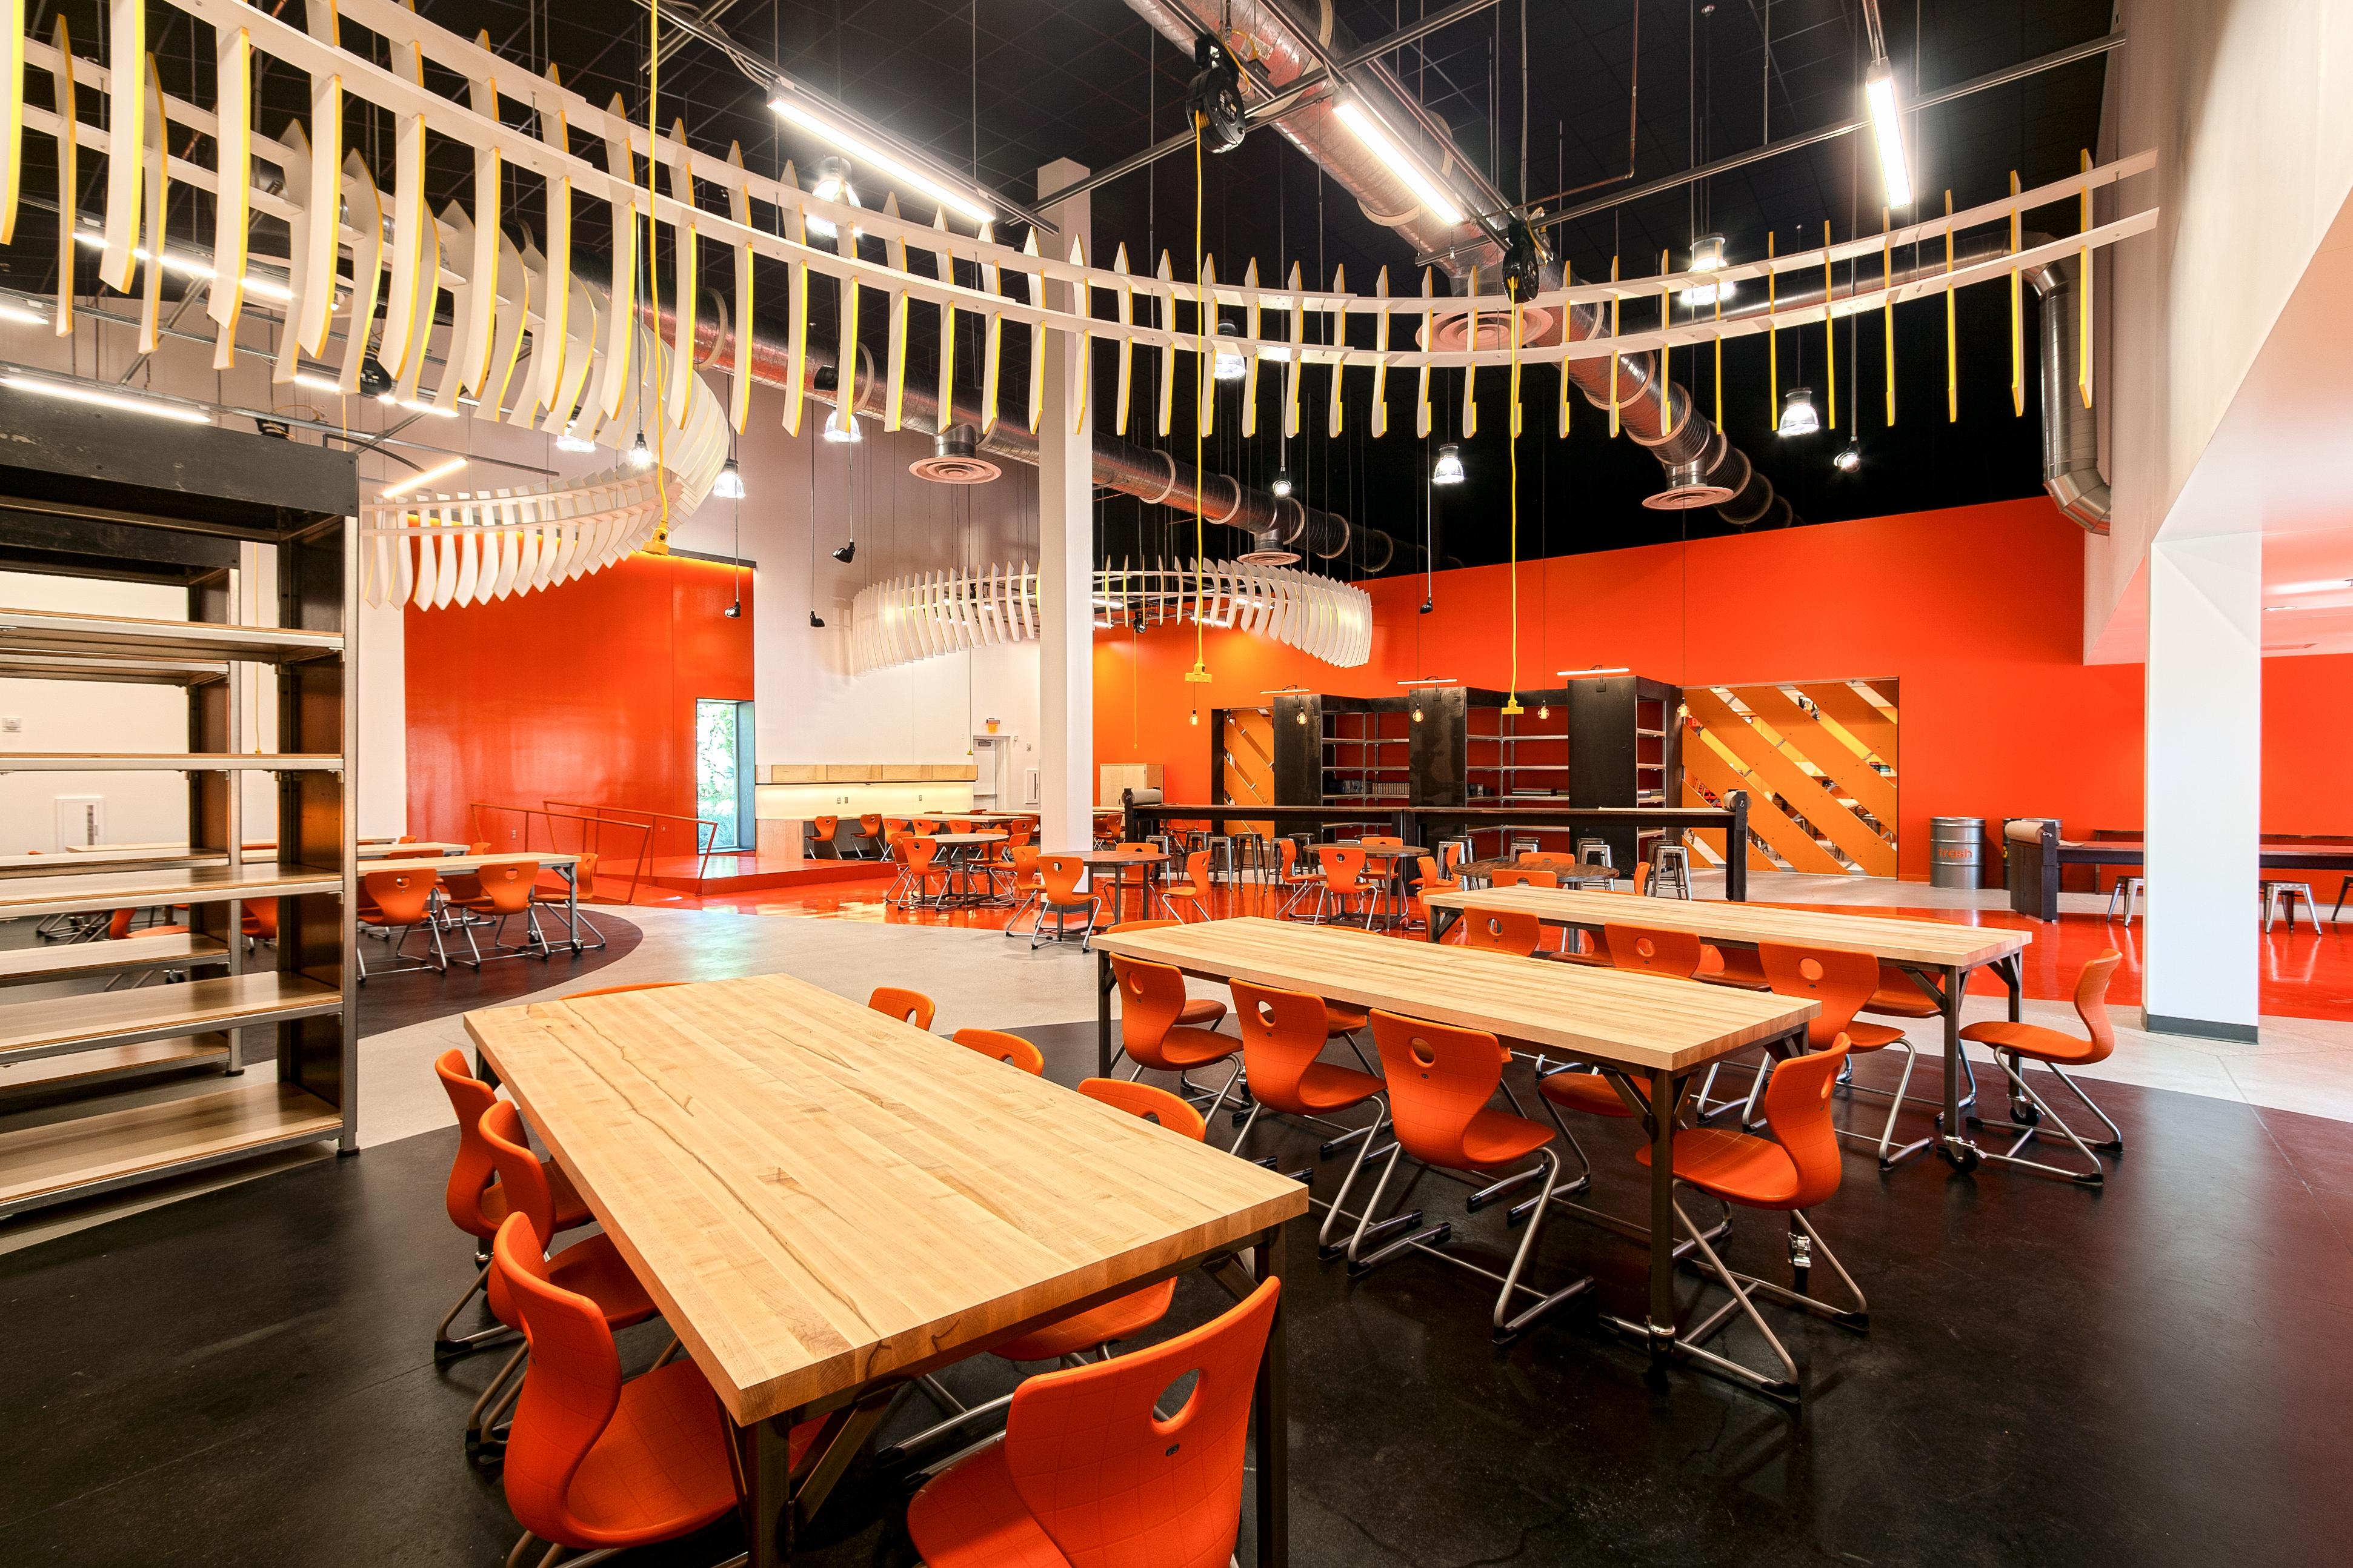 science center arizona create projects phoenix completed az education fall museums thematic september